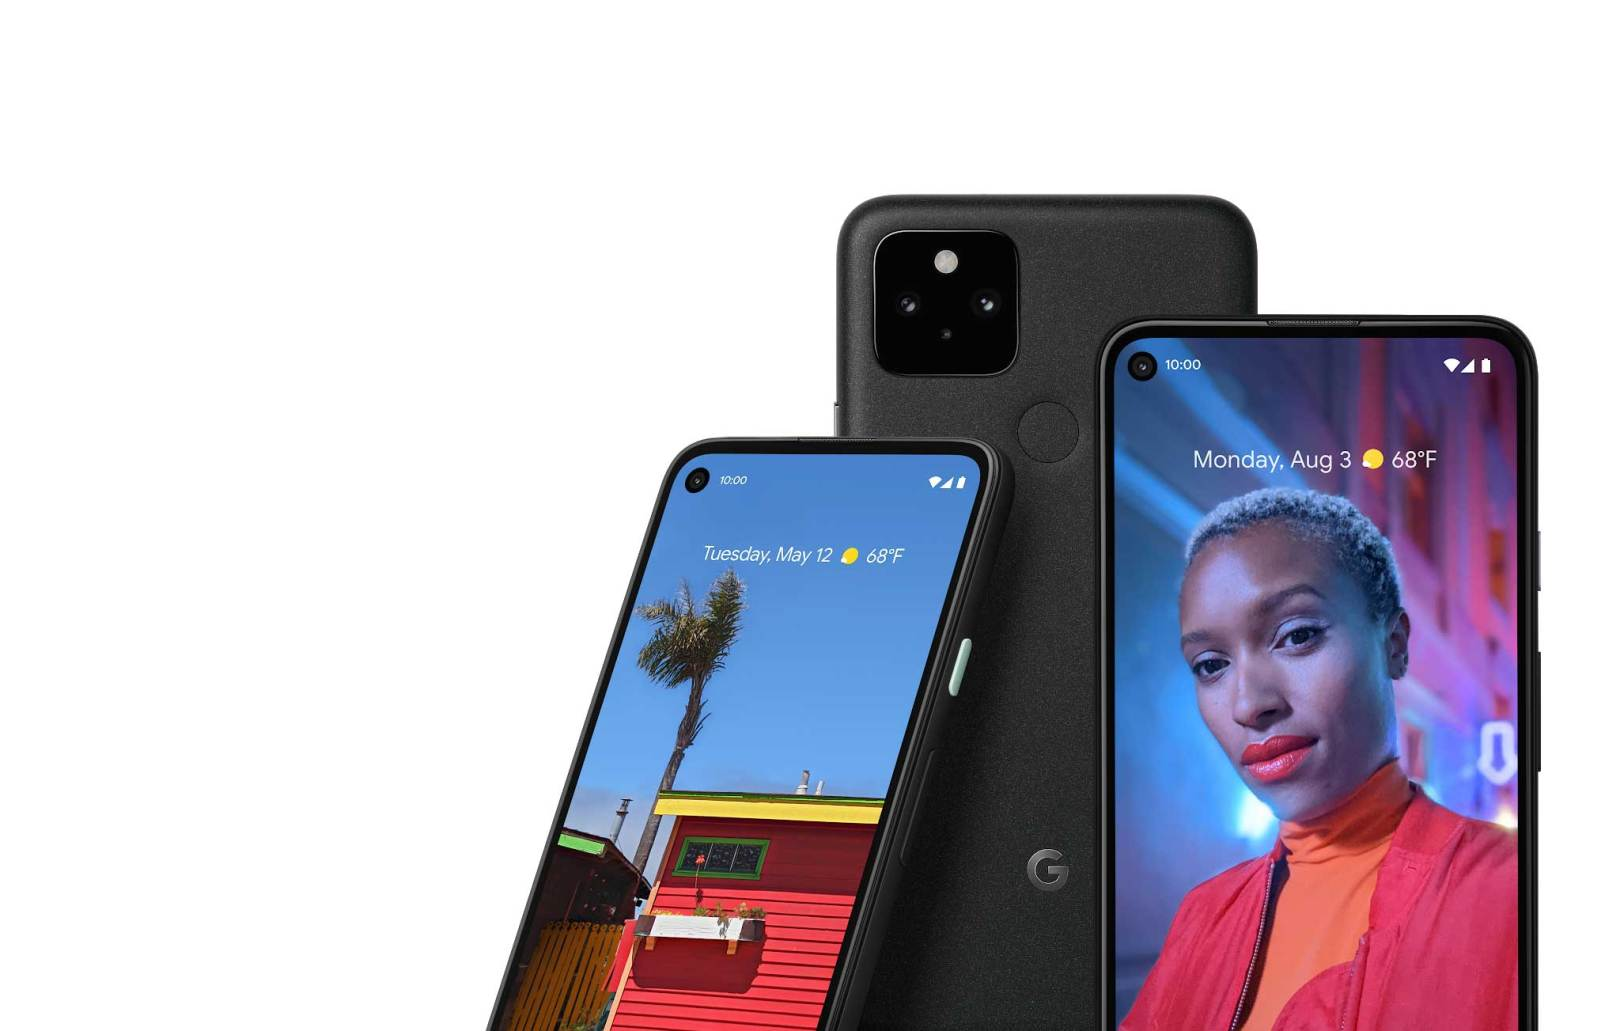 Google Launch Night In Pixel 4a 5G and Pixel 5